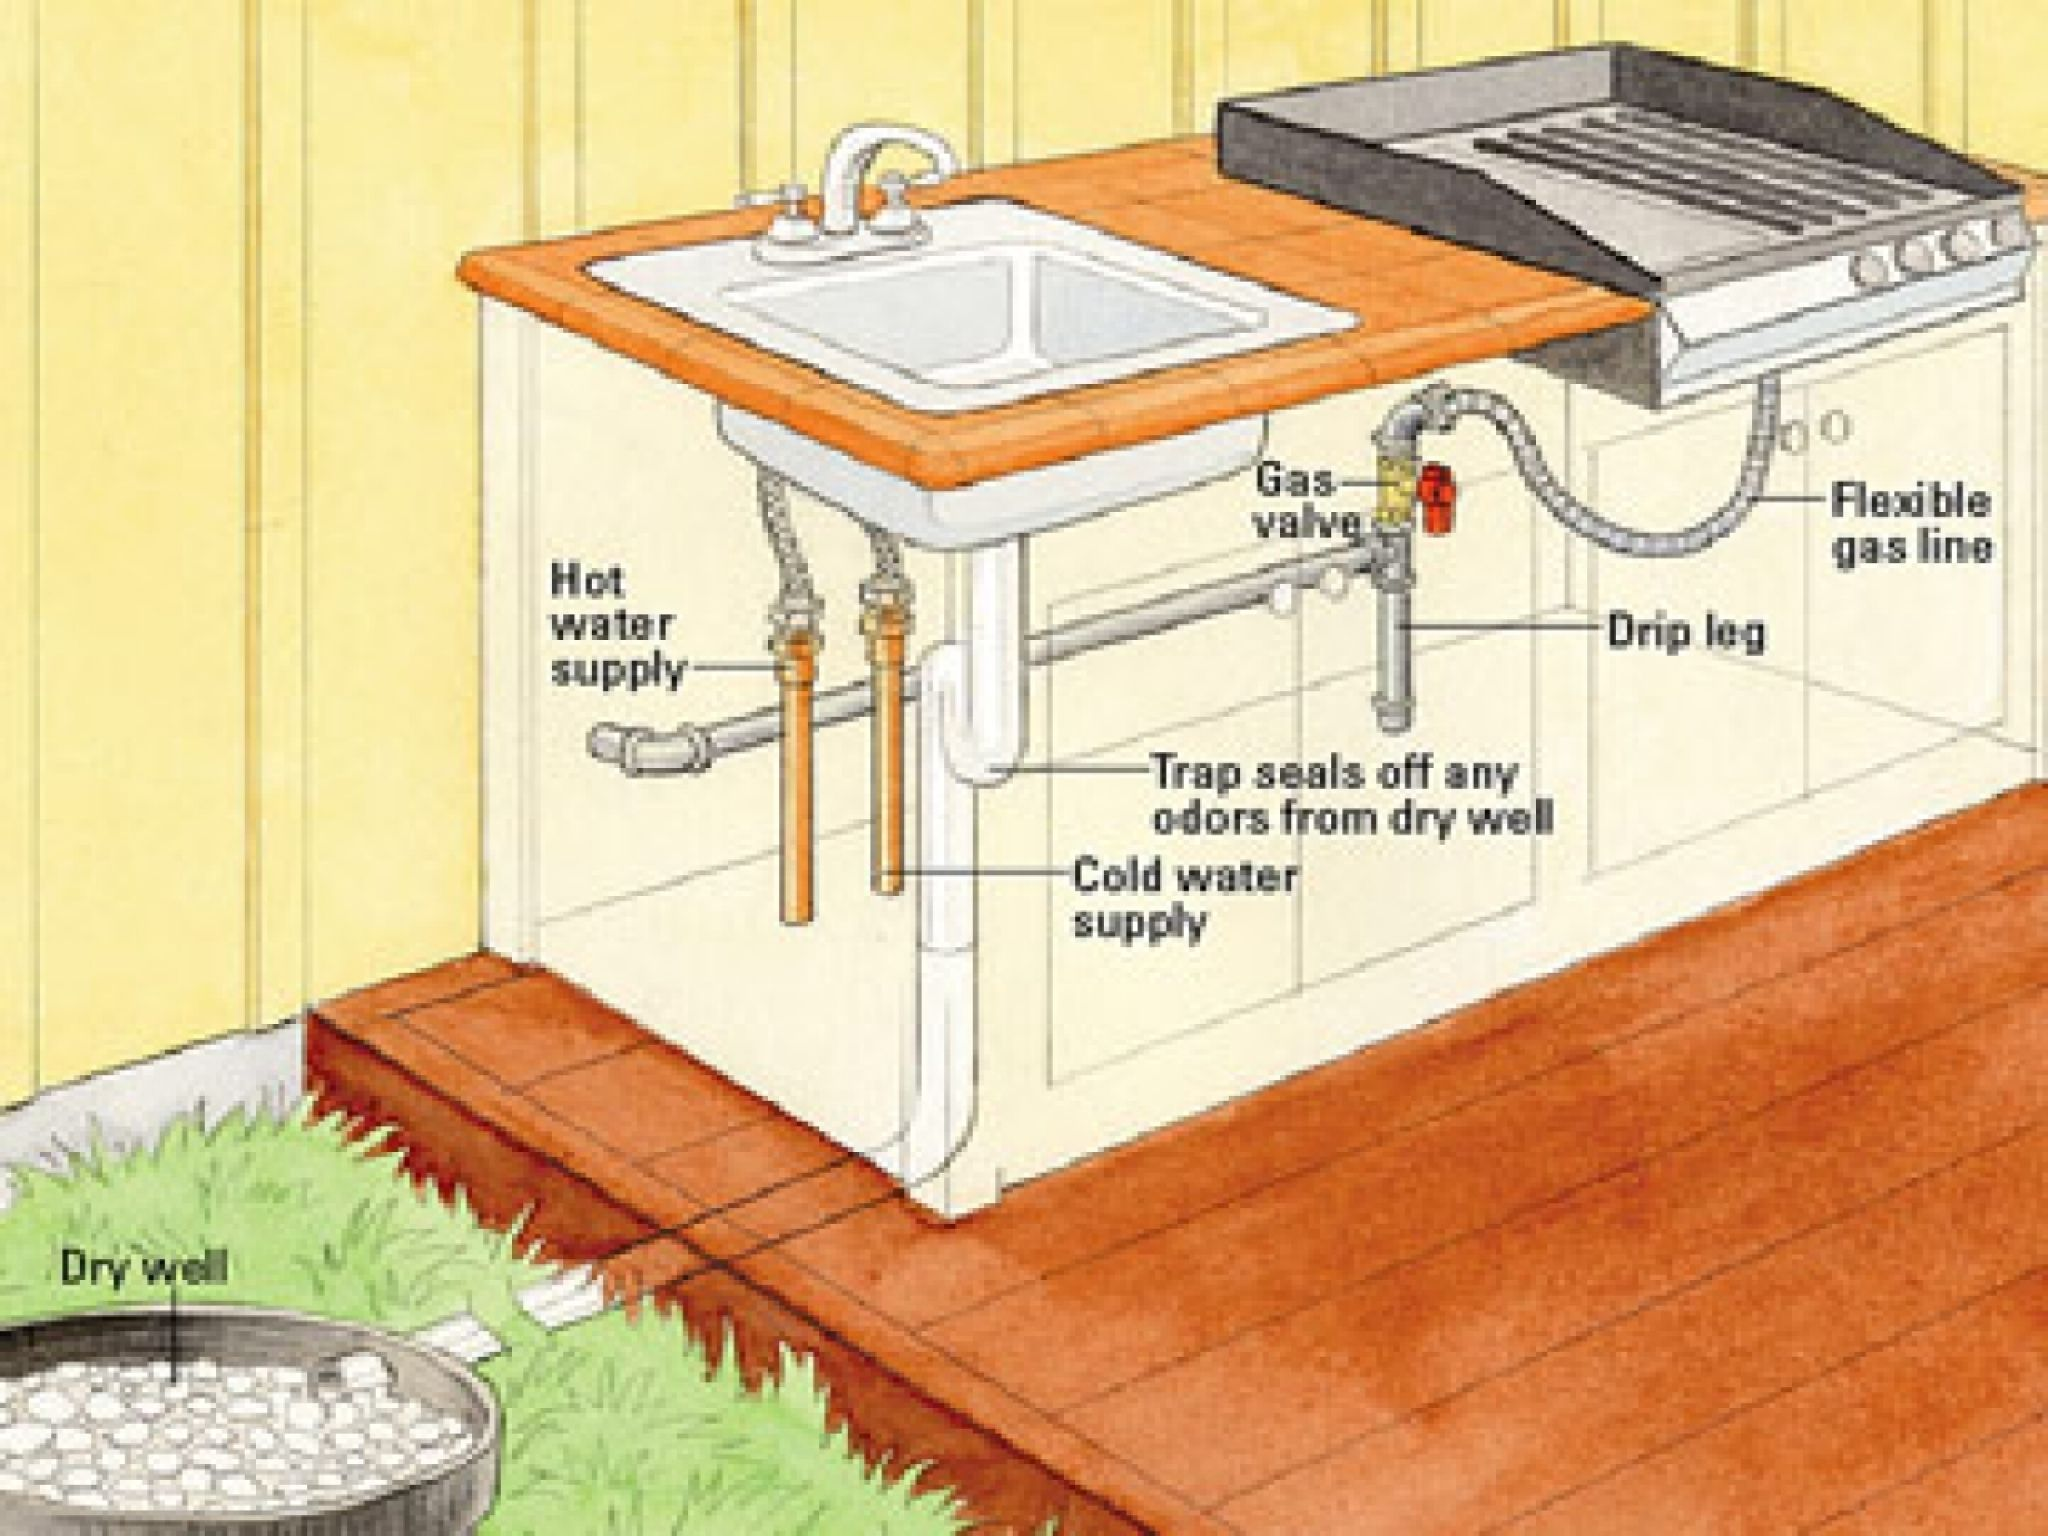 Outdoor Kitchen Sink Drain Favorite Interior Paint Colors Check More At Http Www Mtbasics C Diy Outdoor Kitchen Outdoor Kitchen Outdoor Kitchen Countertops